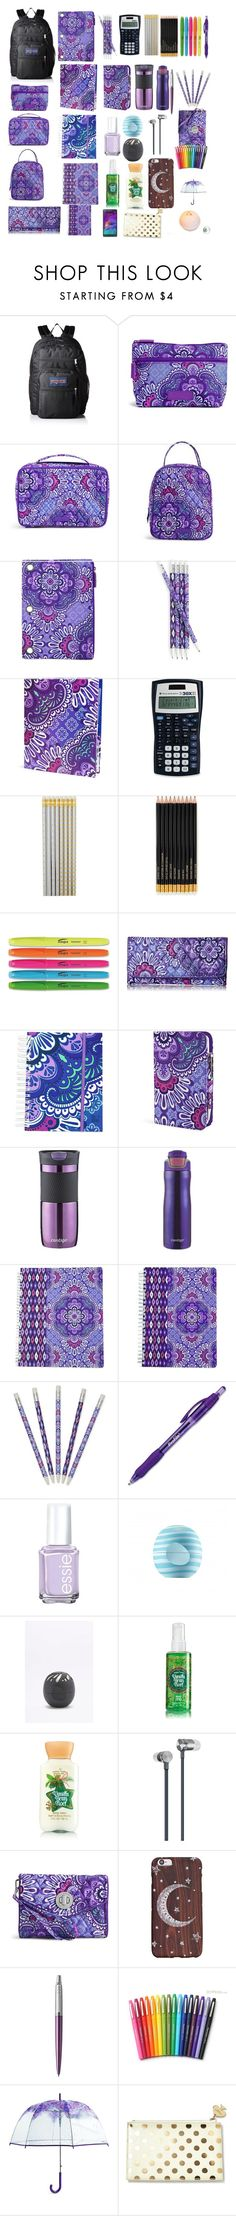 """beauty"" by slytherinbeauty ❤ liked on Polyvore featuring JanSport, Vera Bradley, The Pink Orange, Sloane Stationery, Contigo, Paper Mate, Essie, Eos, Master & Dynamic and Samsung"